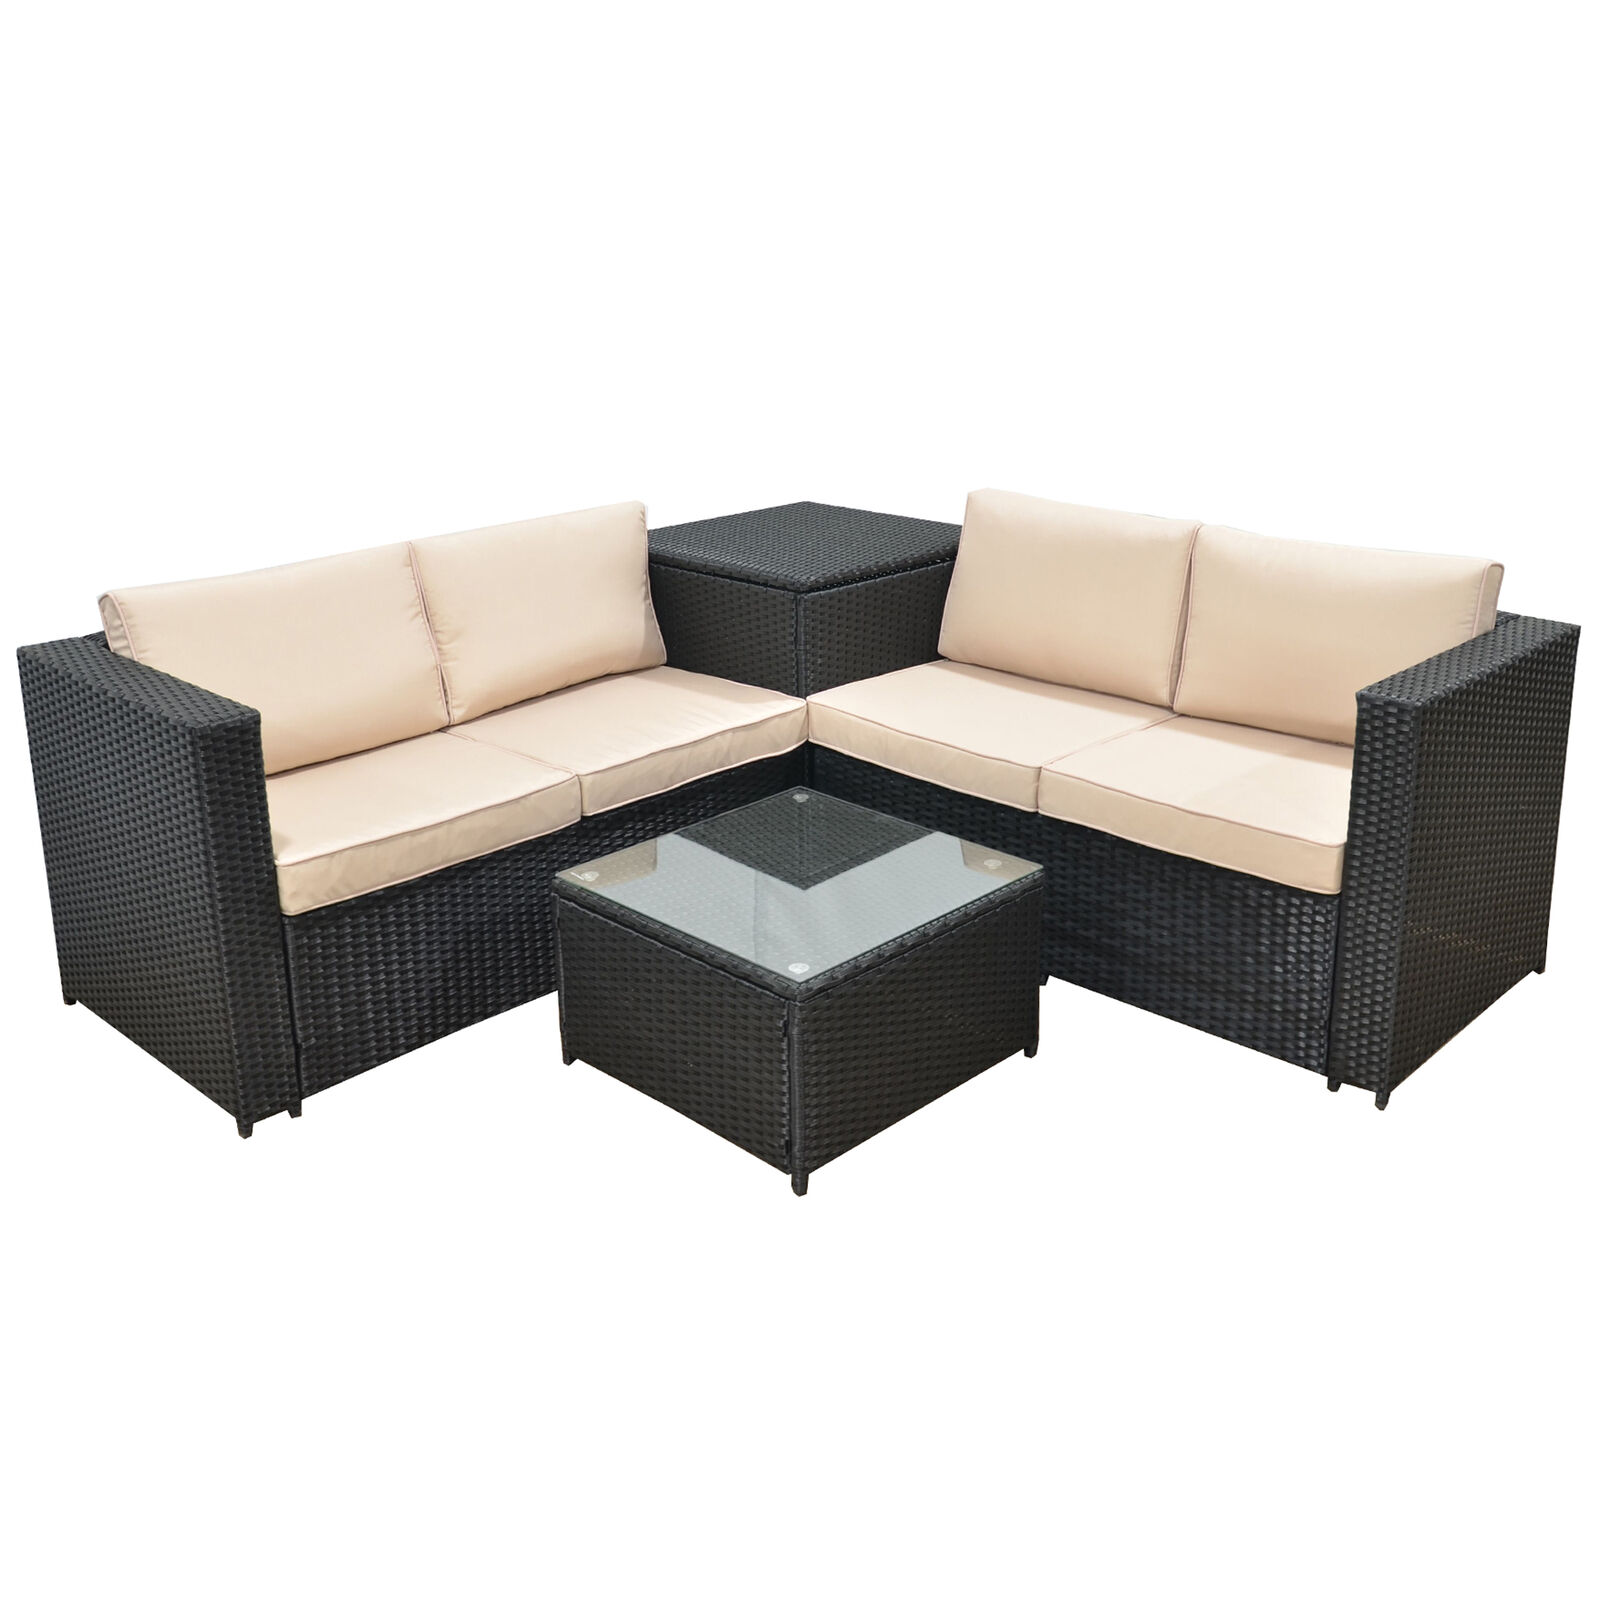 jalano poly rattan lounge set gartenm bel gartengarnitur. Black Bedroom Furniture Sets. Home Design Ideas